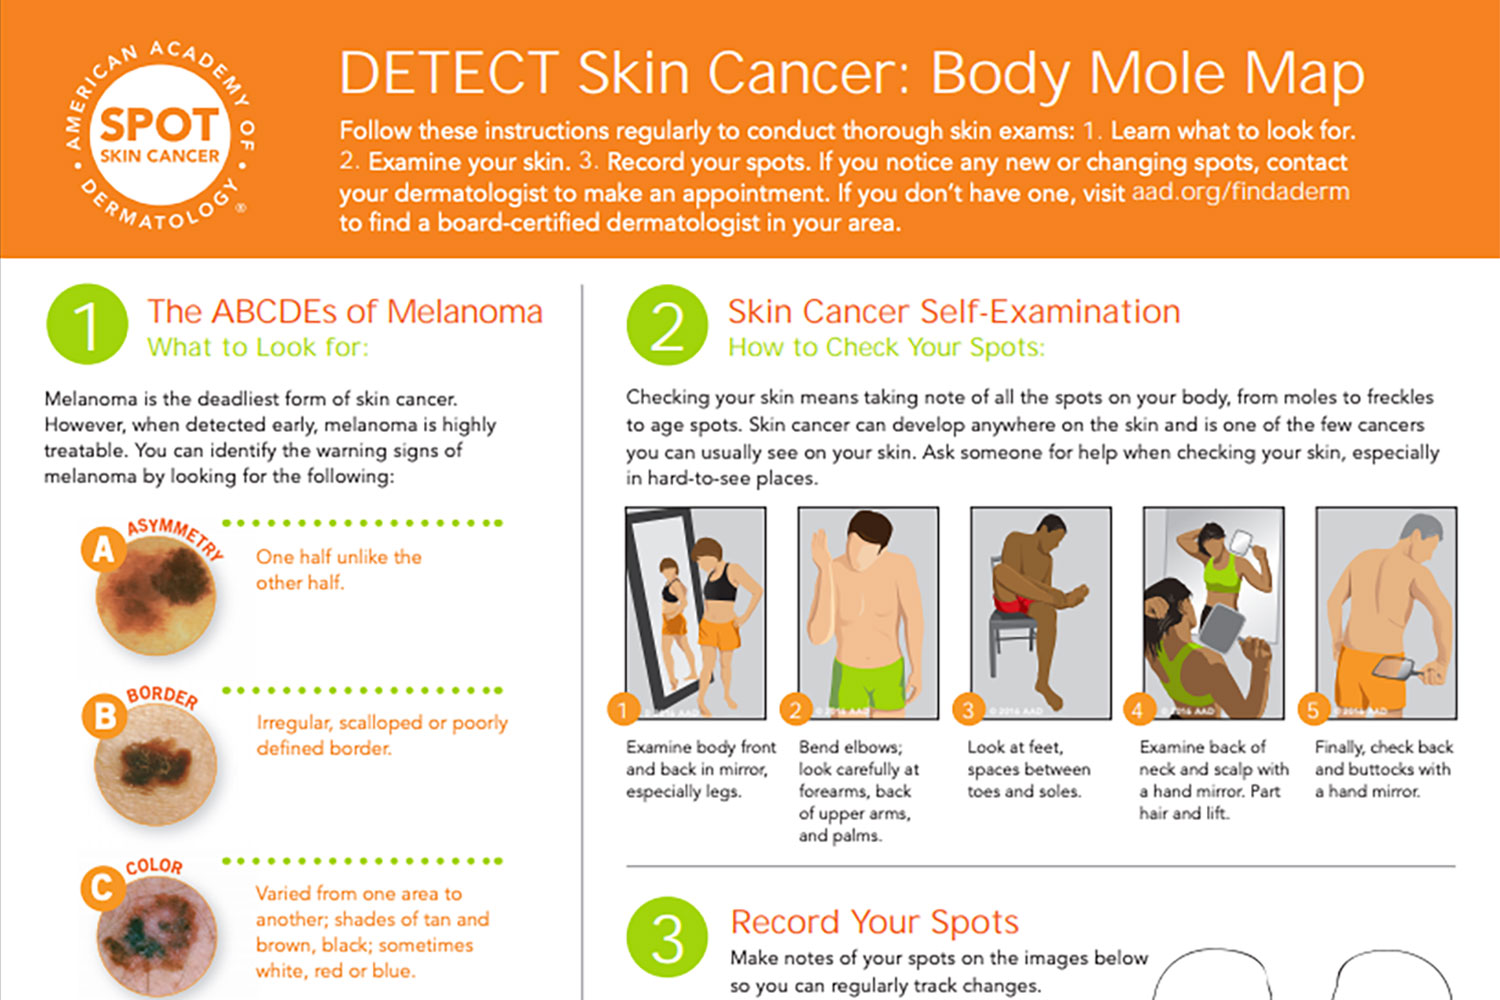 Download your own Body Mole Map